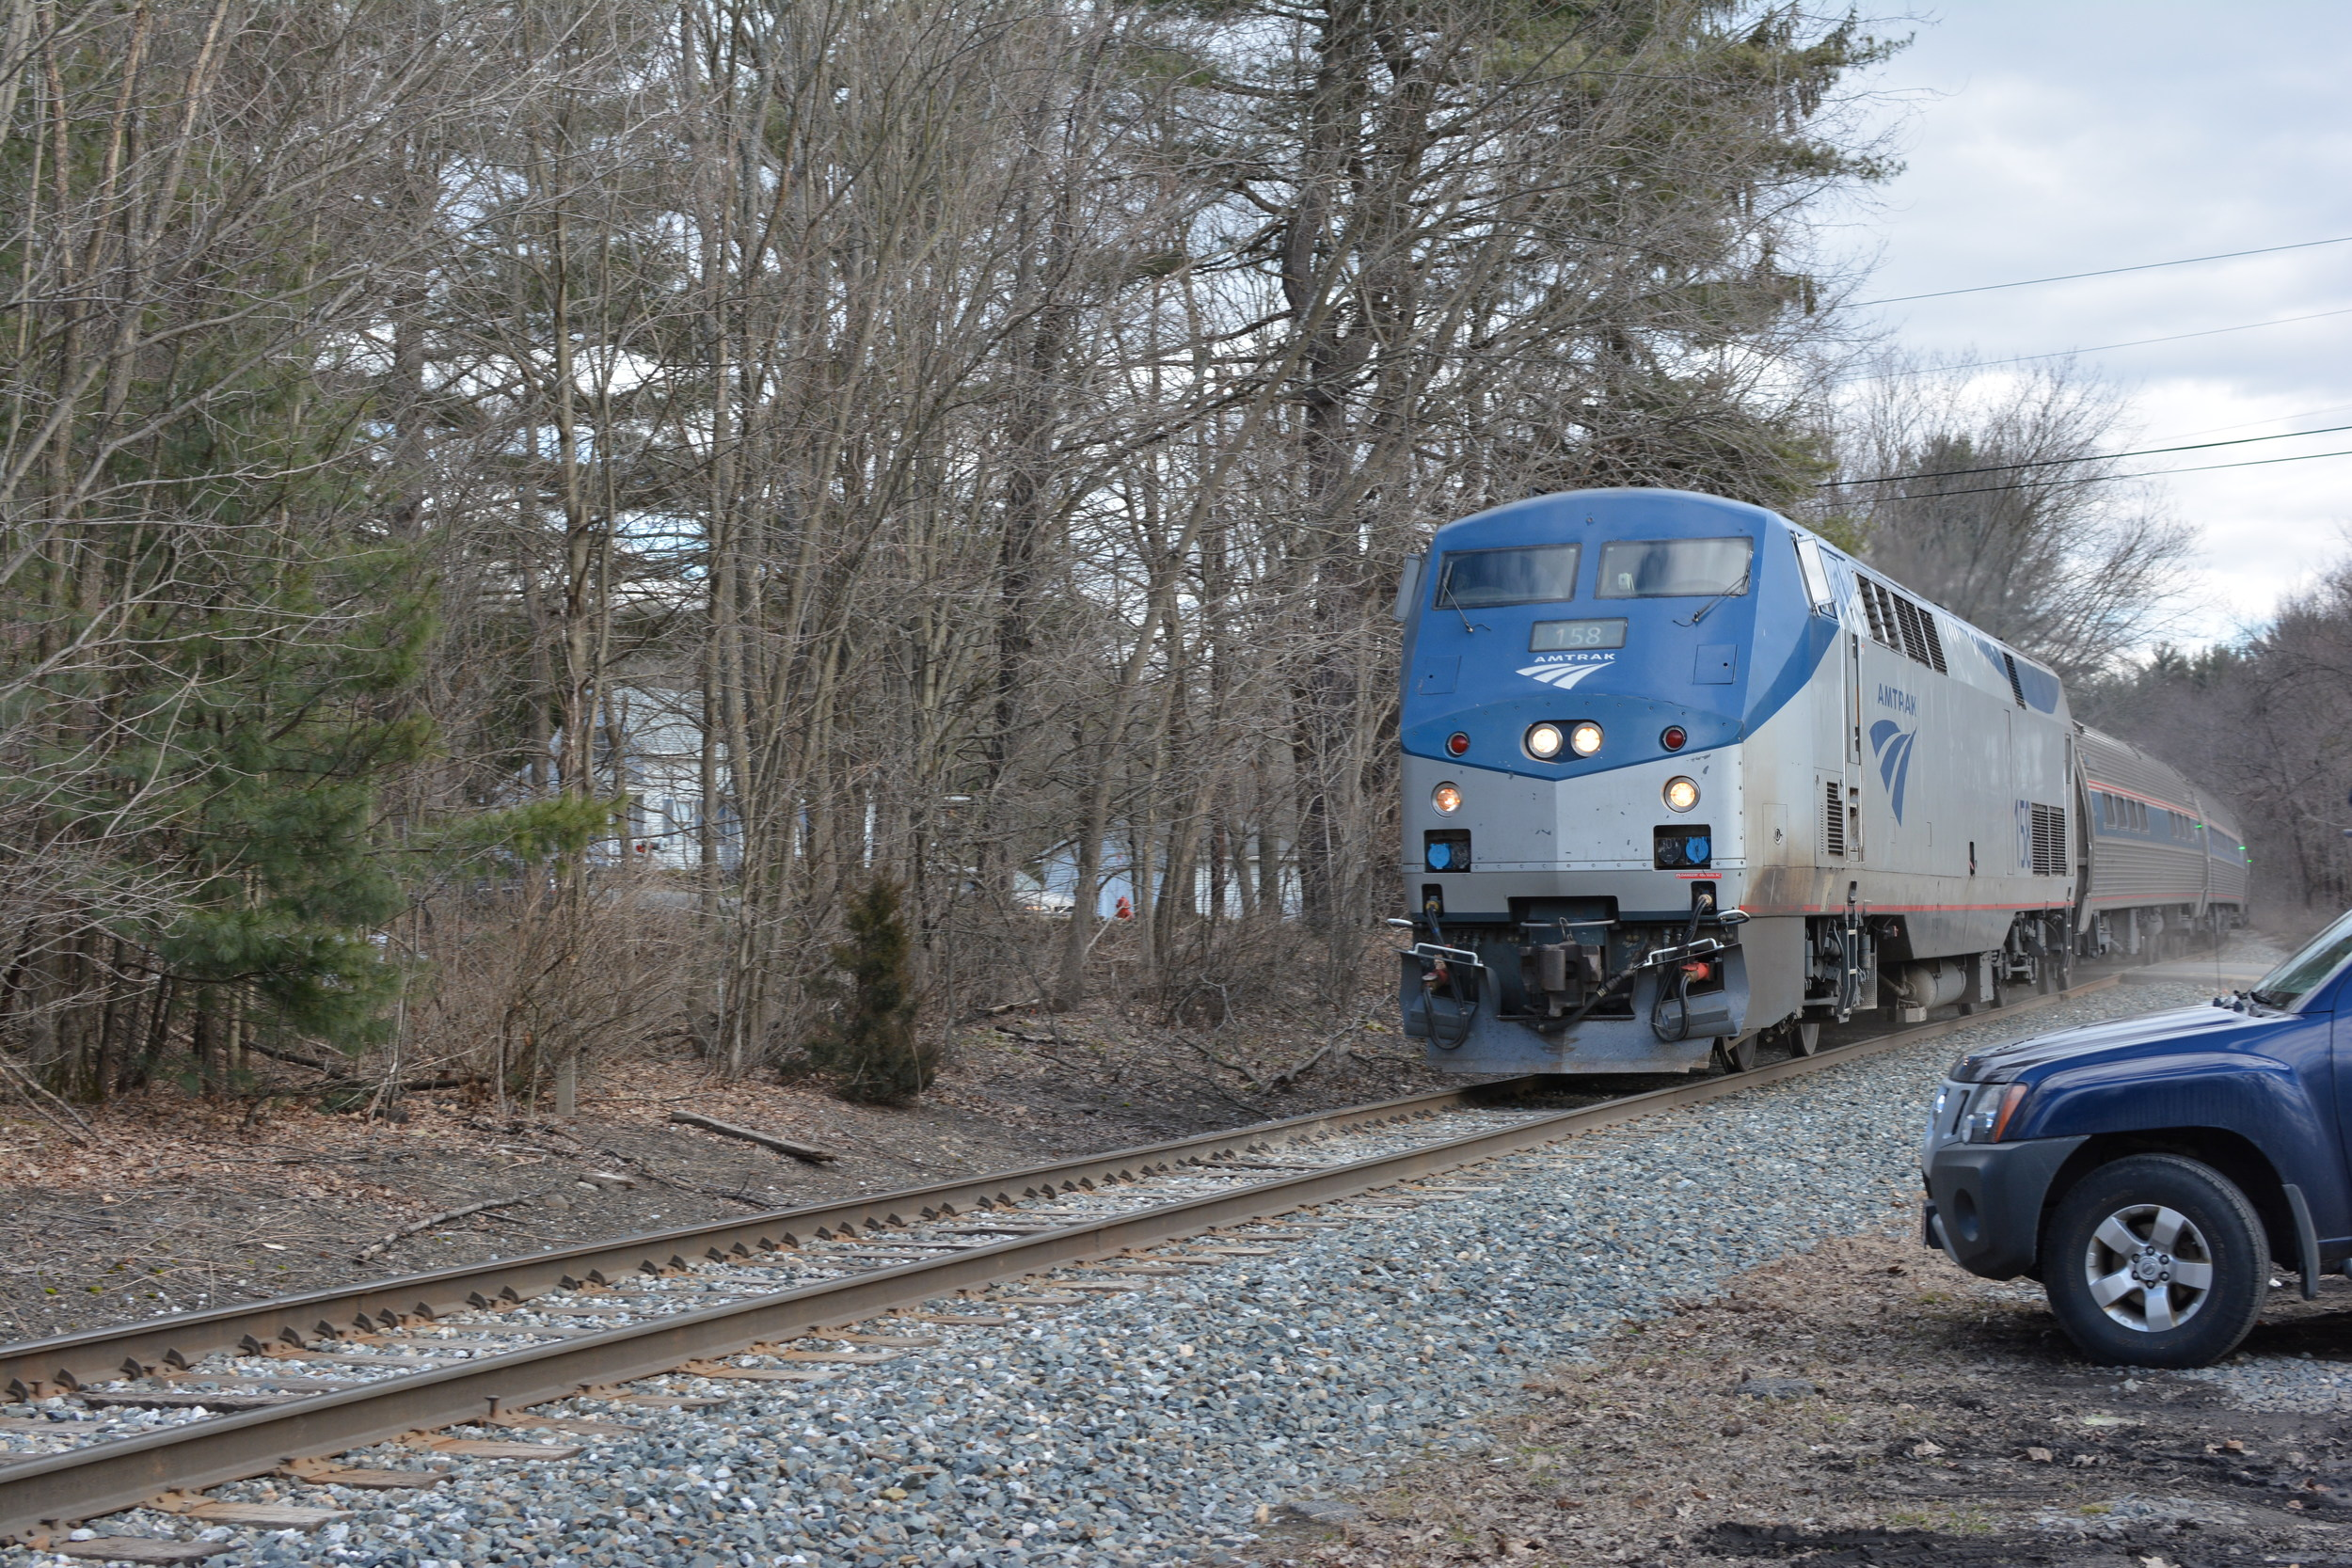 Amtrak Vermonter through Cushman MA. 4/07